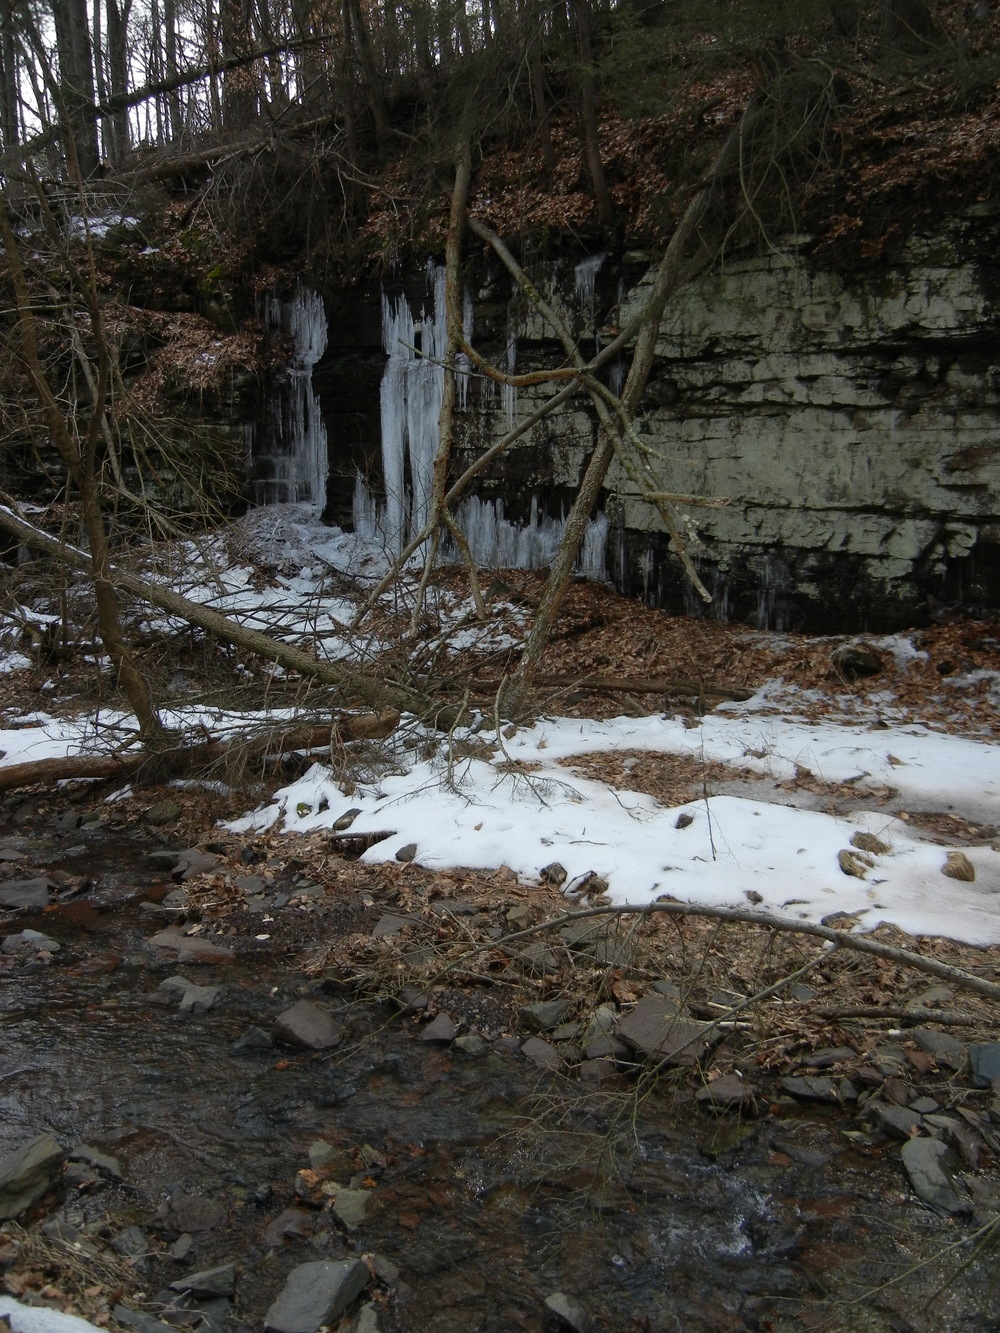 The small stream and the rocky walls adorned with ice bordering Dark Hollow Road's descent to the River.